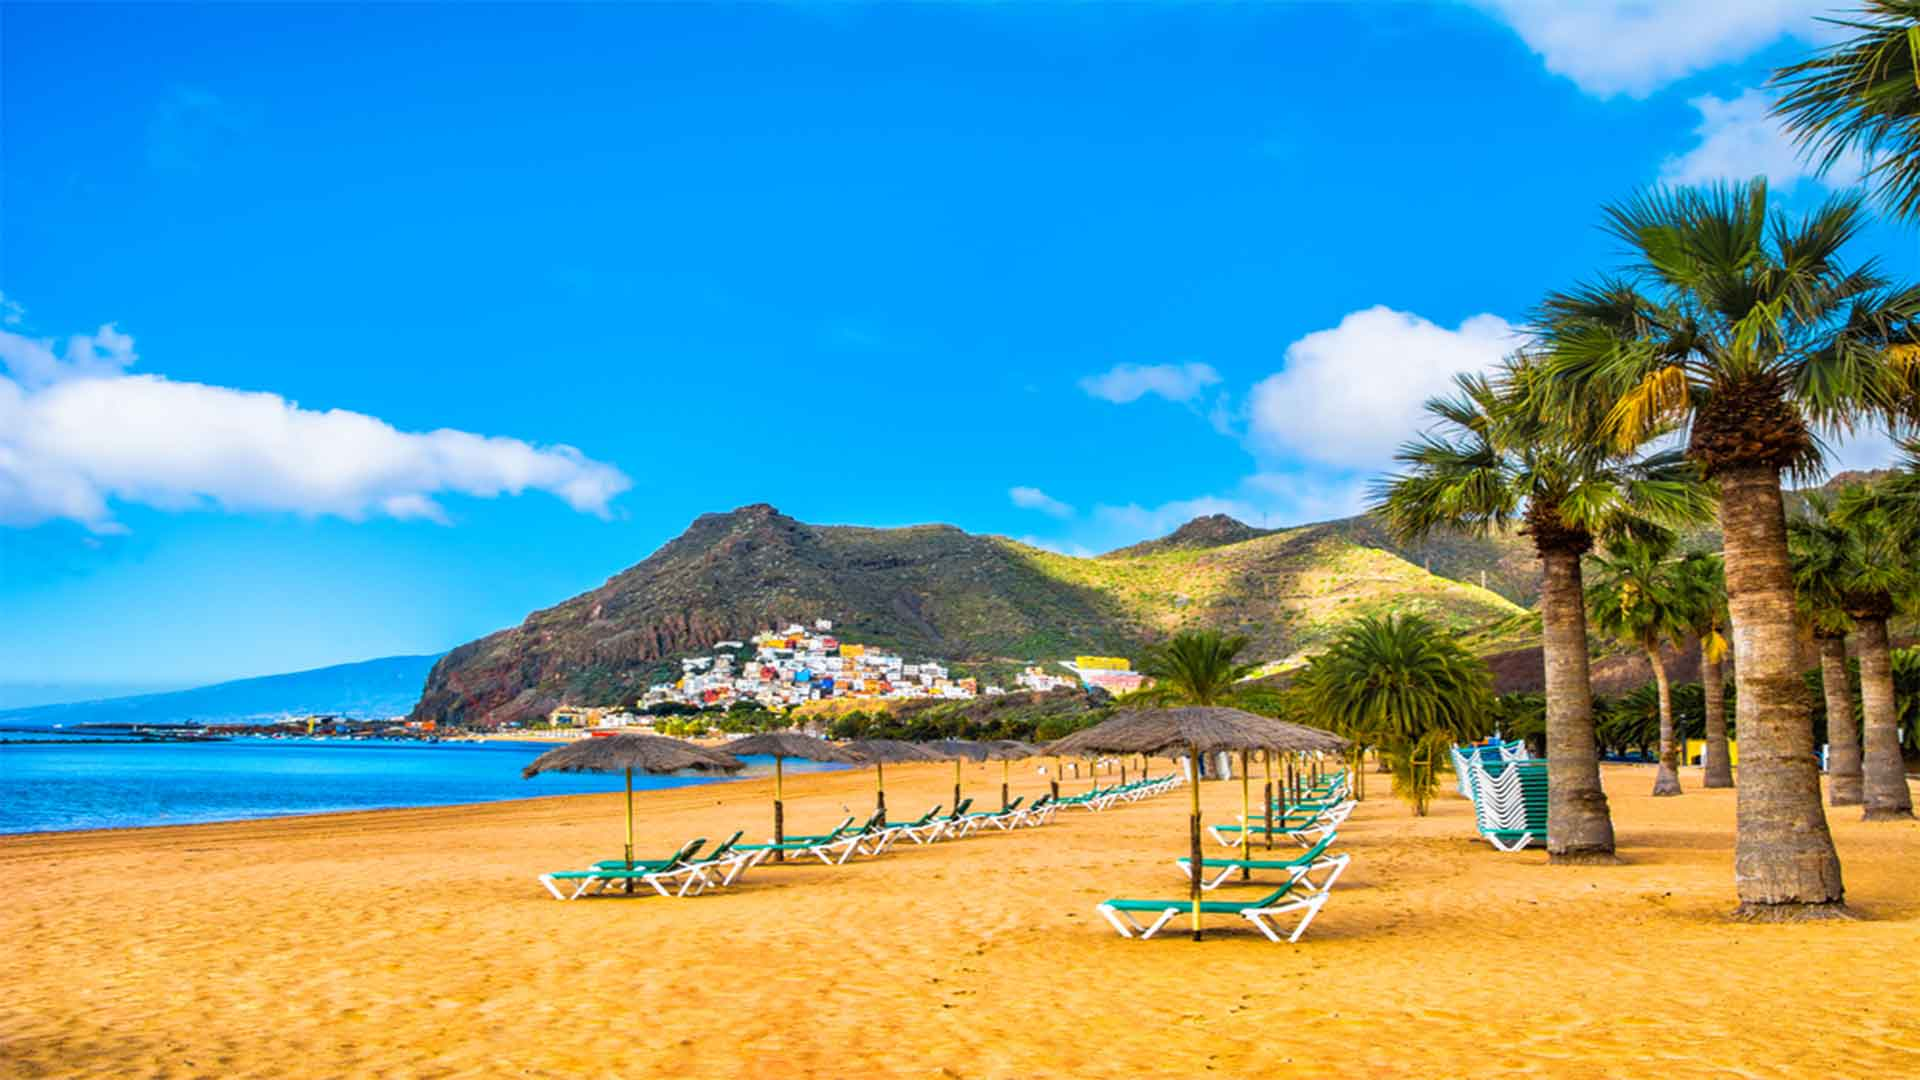 The Ultimate Tenerife Vacation Travel Guide Zen Tripstar Santa Cruz de Tenerife Tenerife Canary Island Spain